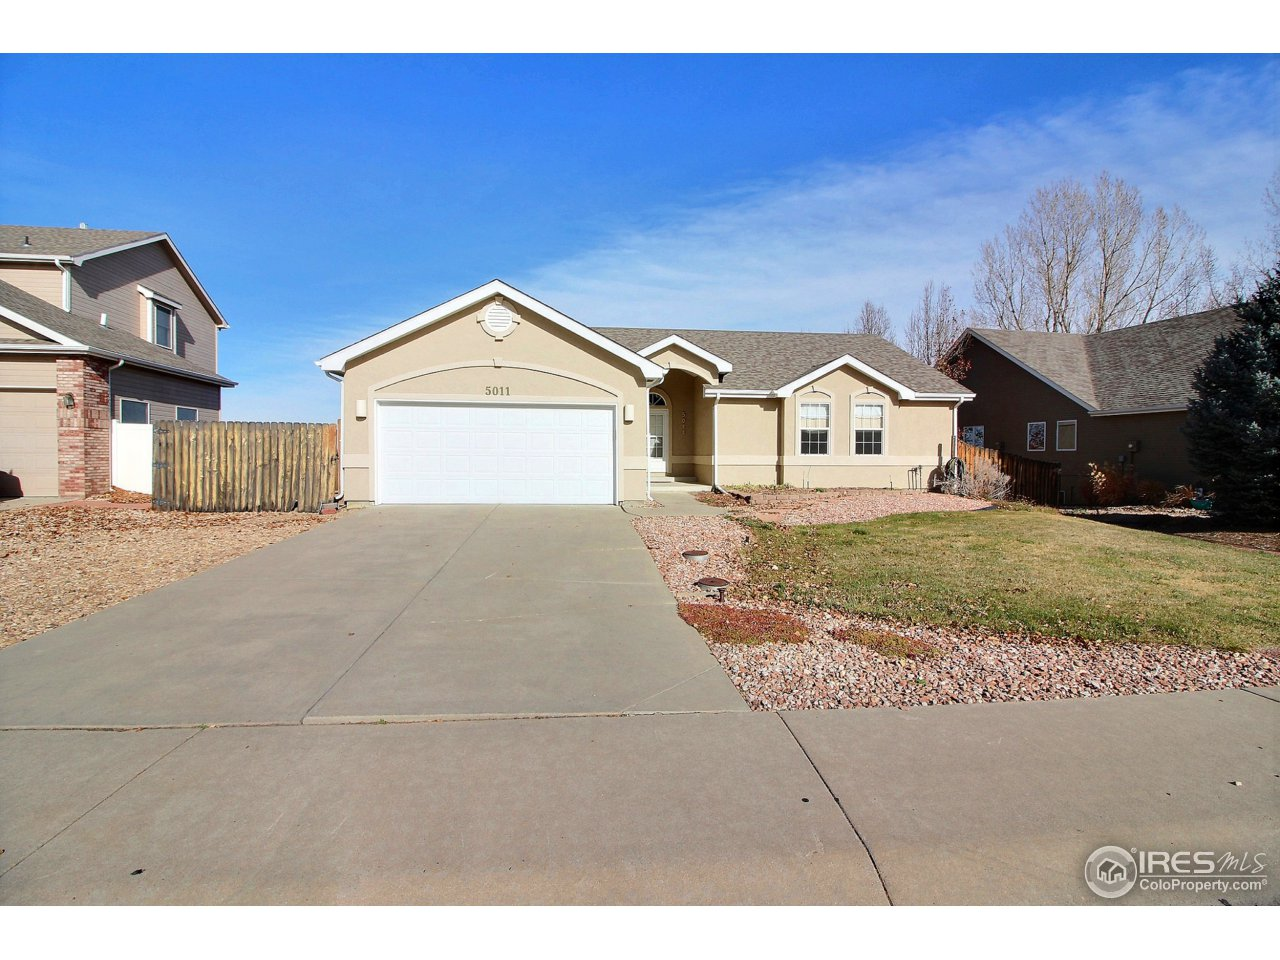 5011 W 6th St Rd, Greeley CO 80634